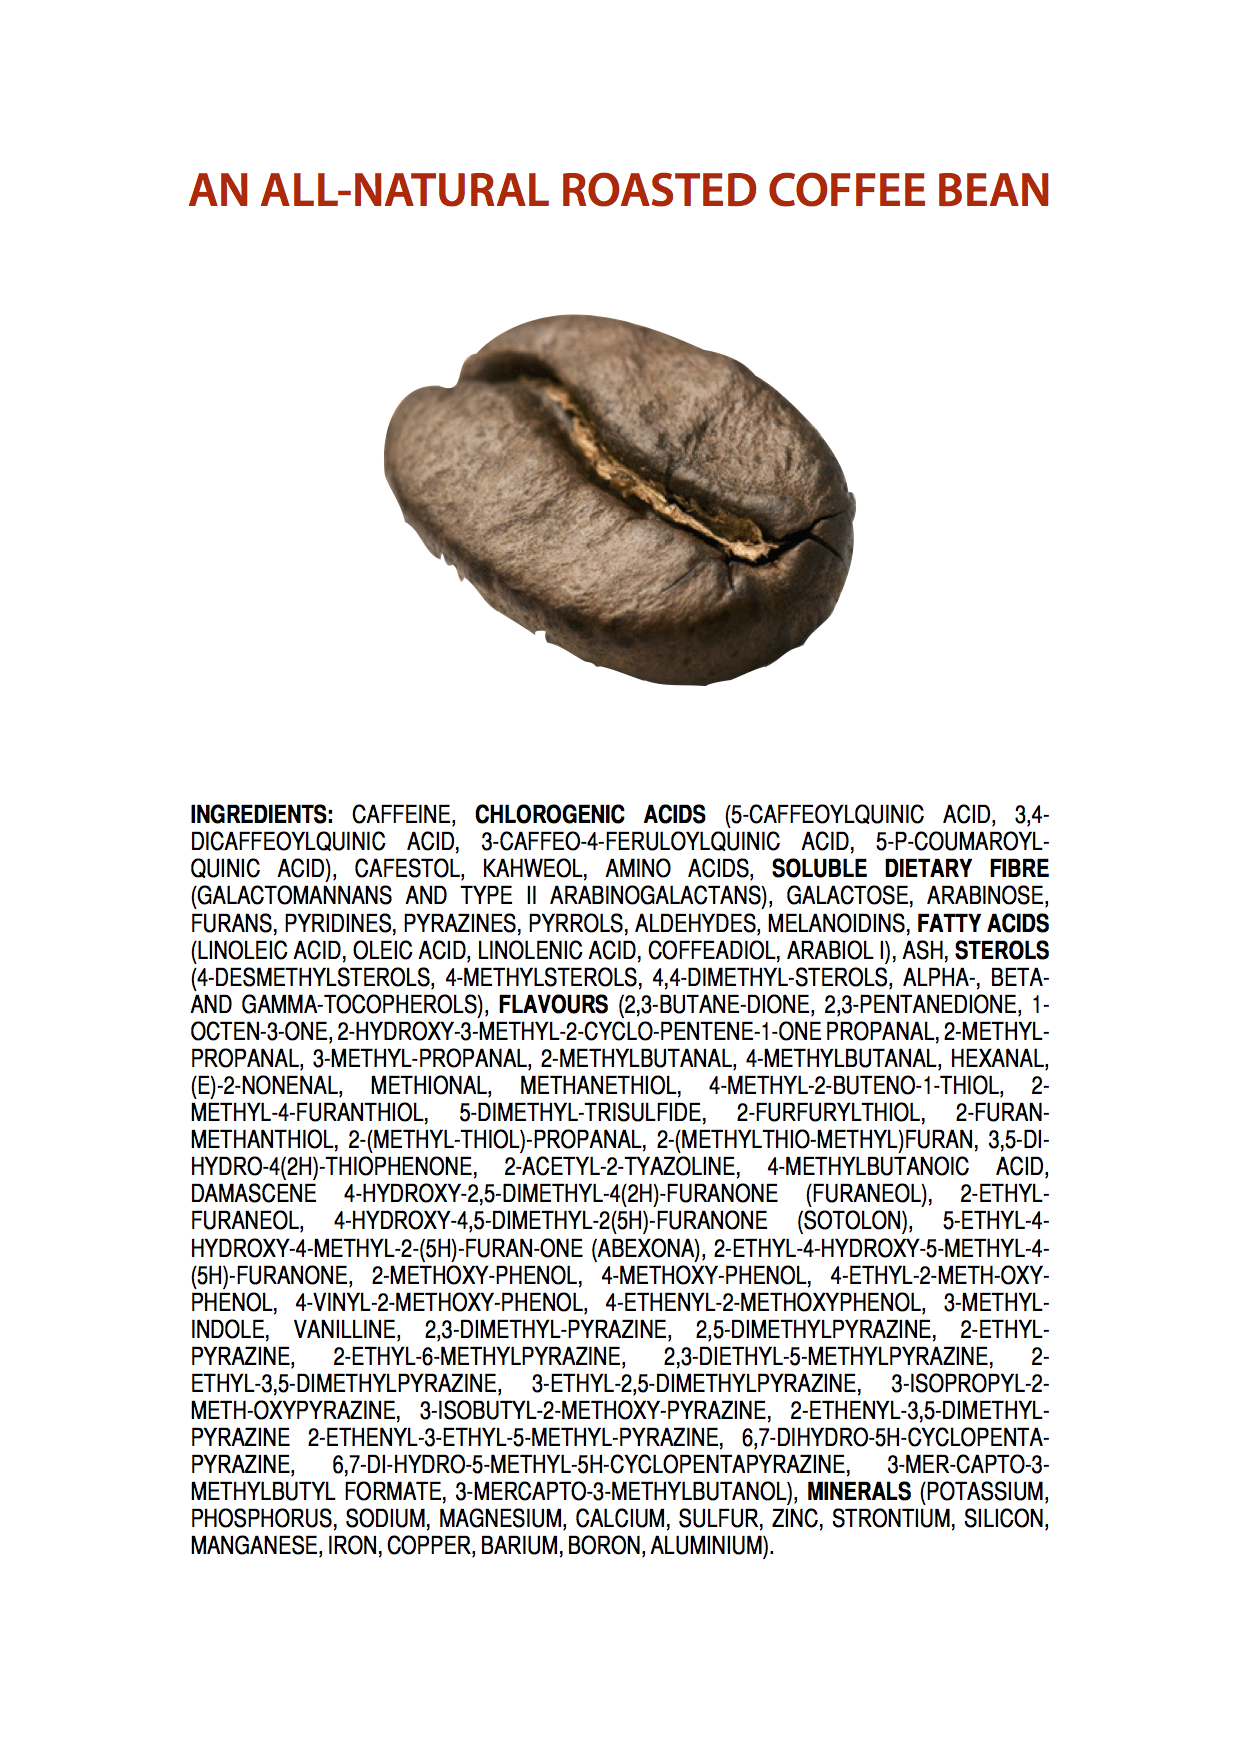 Ingredients of an All-Natural Coffee Bean